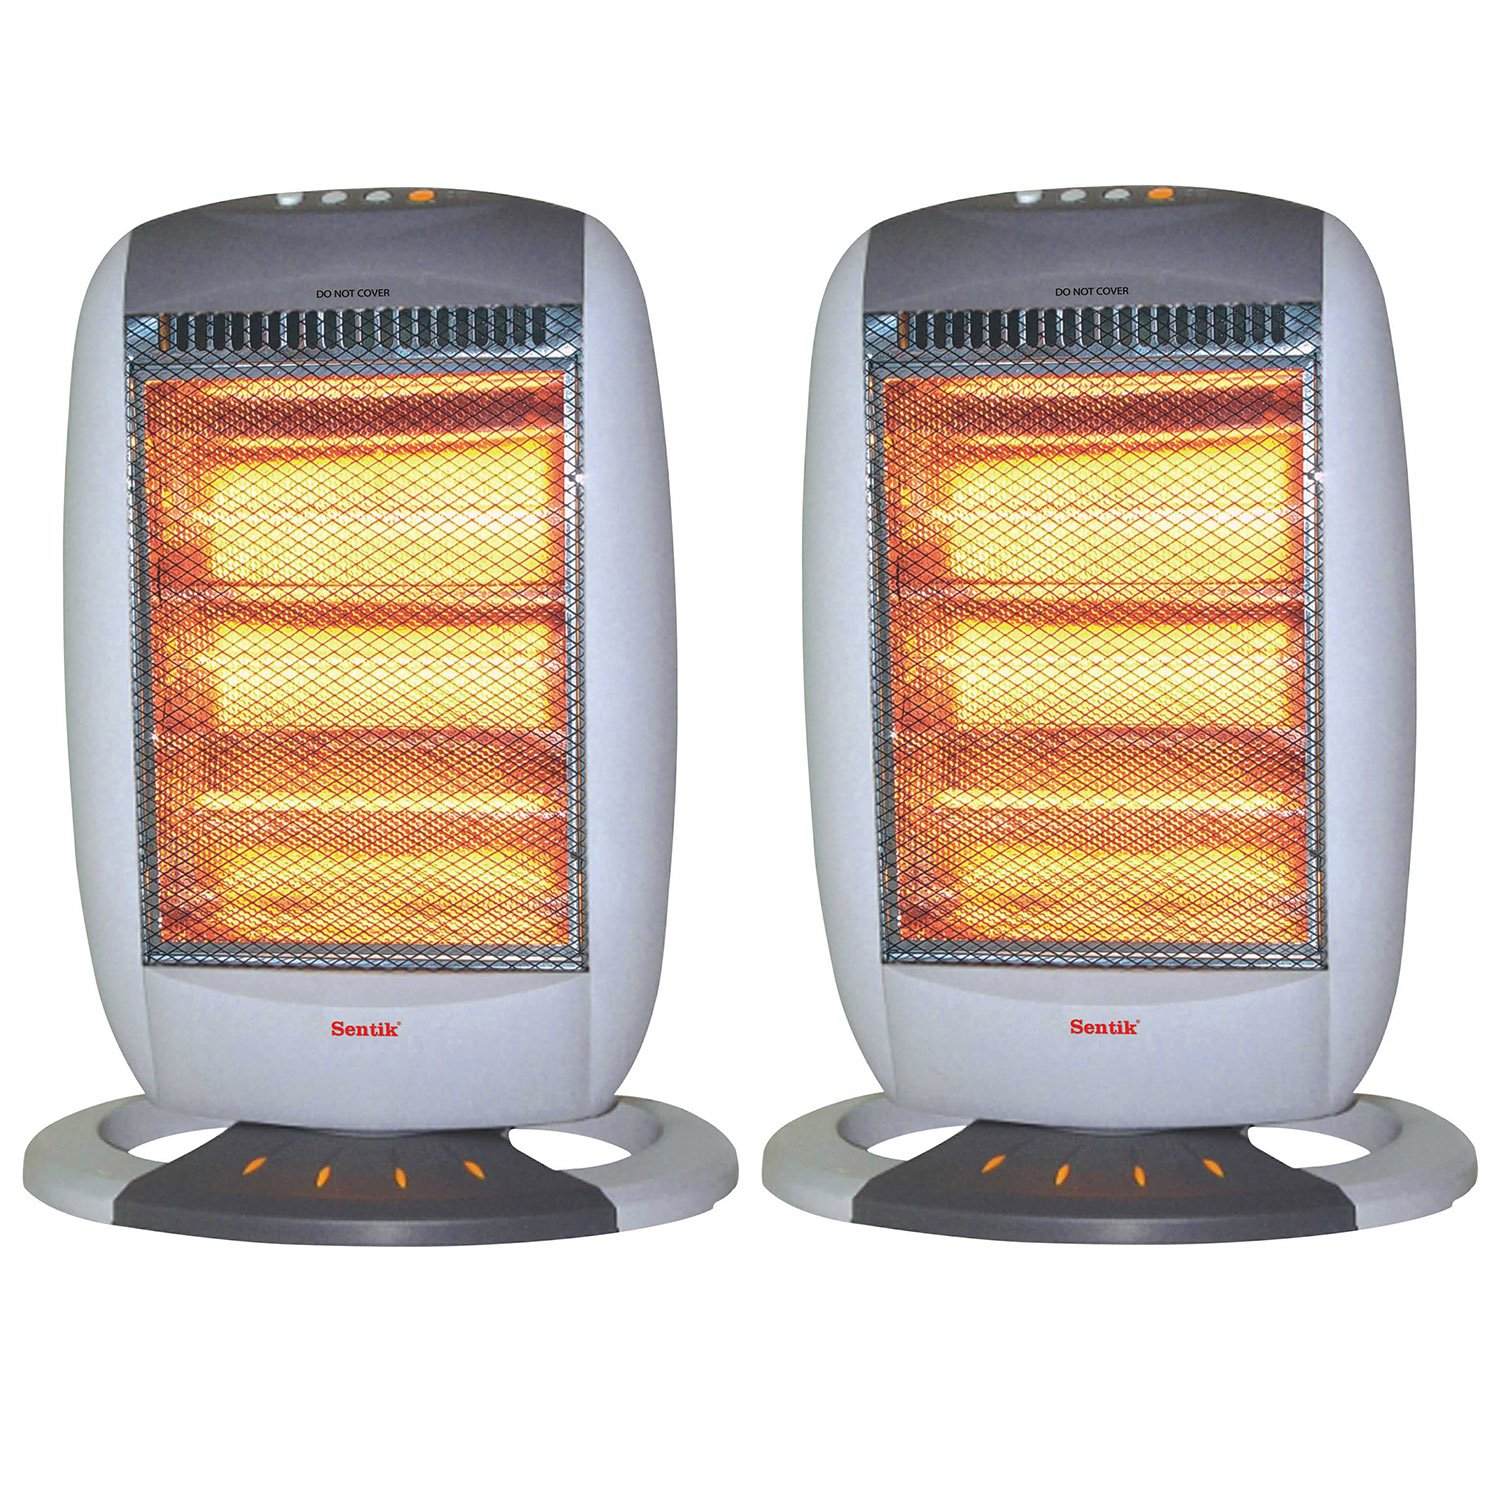 2 x Sentik 1200W Portable Electric Halogen Heater, 3 Heat Settings